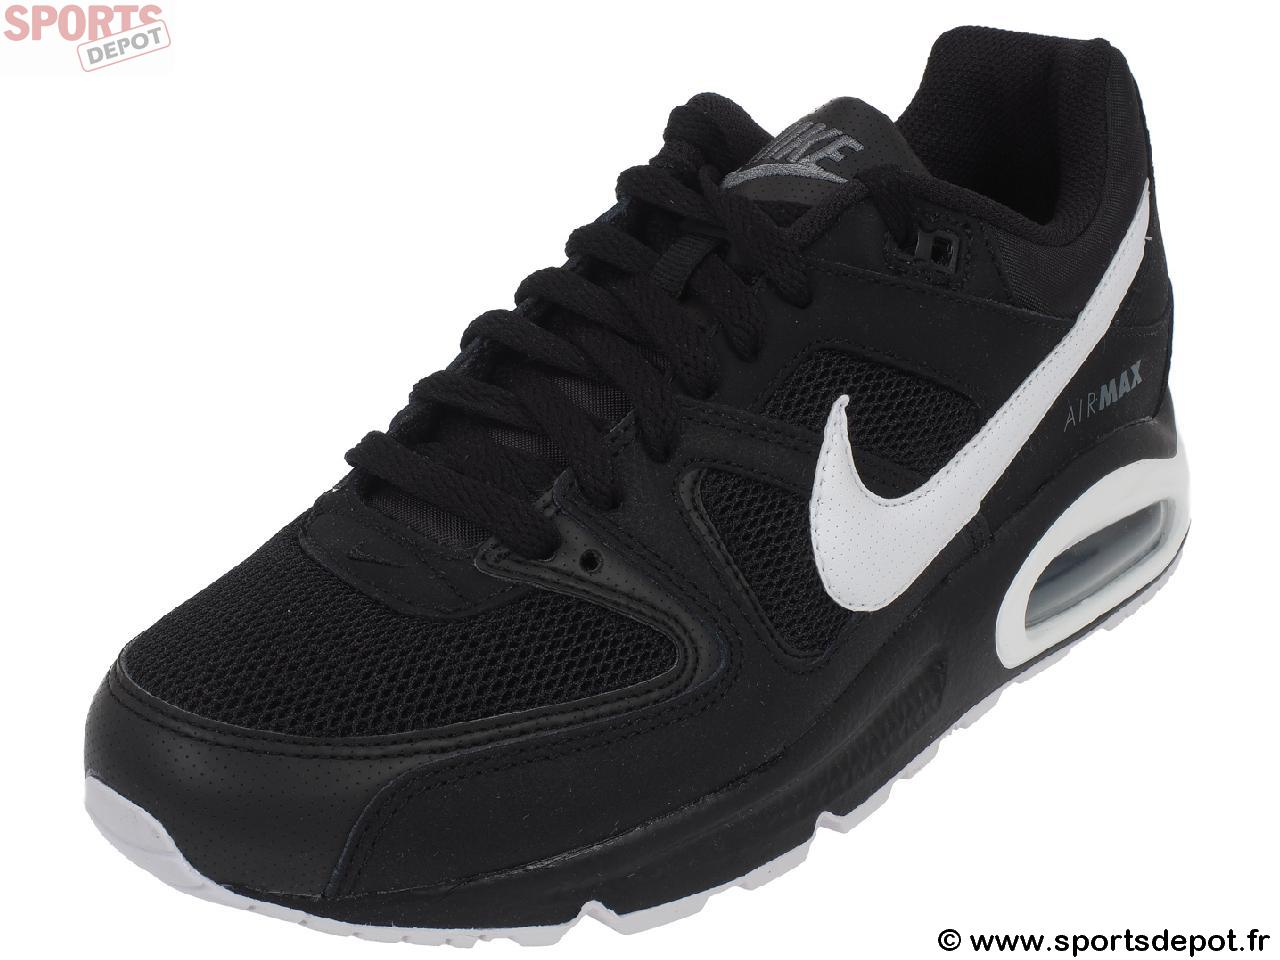 Acheter Chaussures running mode NIKE Air max comHommesd Homme nr nr Homme comHommesd b515fa